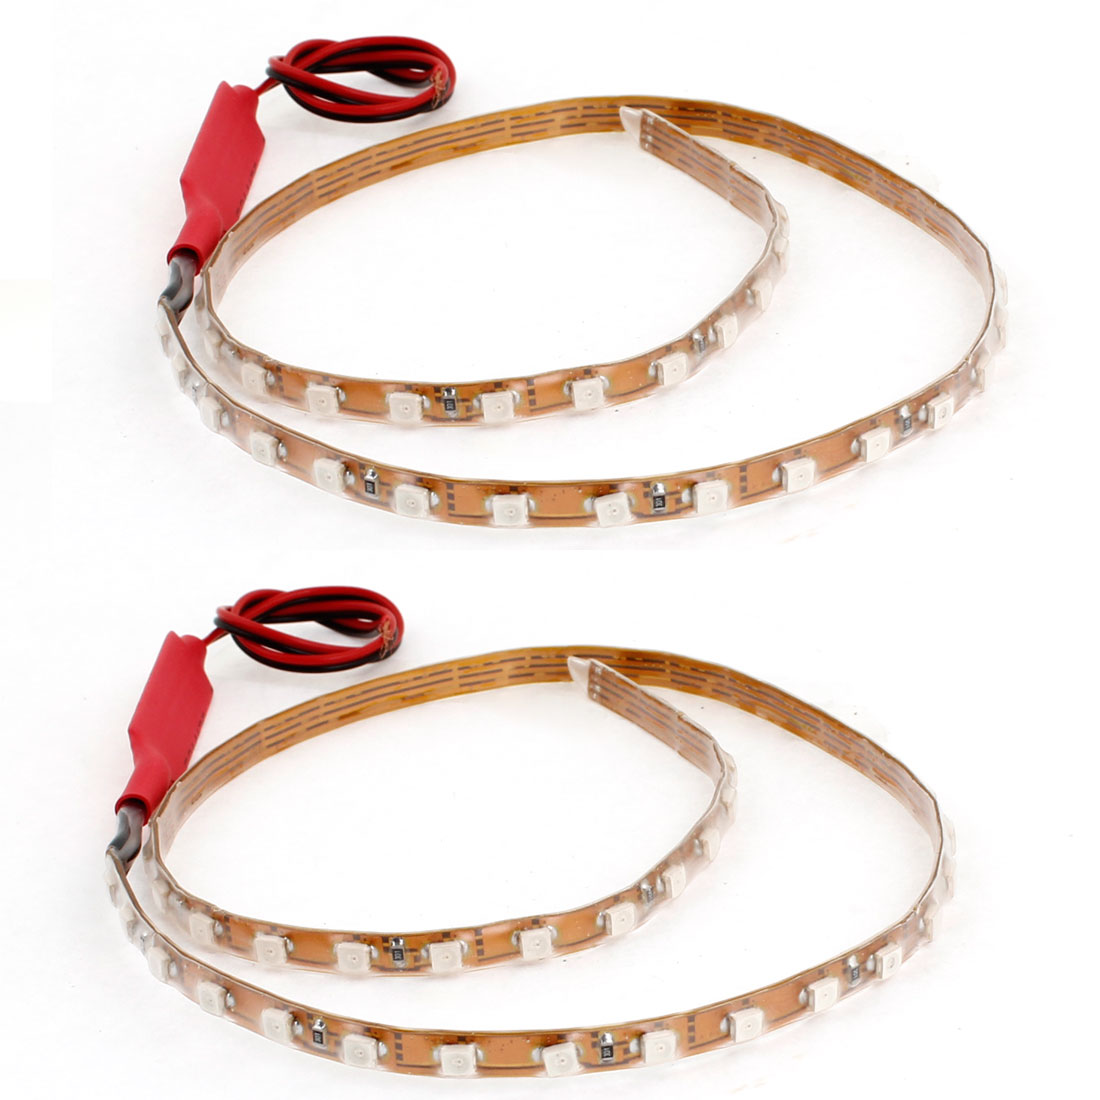 2 x Automobile Car Interior Red 1210 SMD 45 LED Flexible Strip Light Lamp 45CM